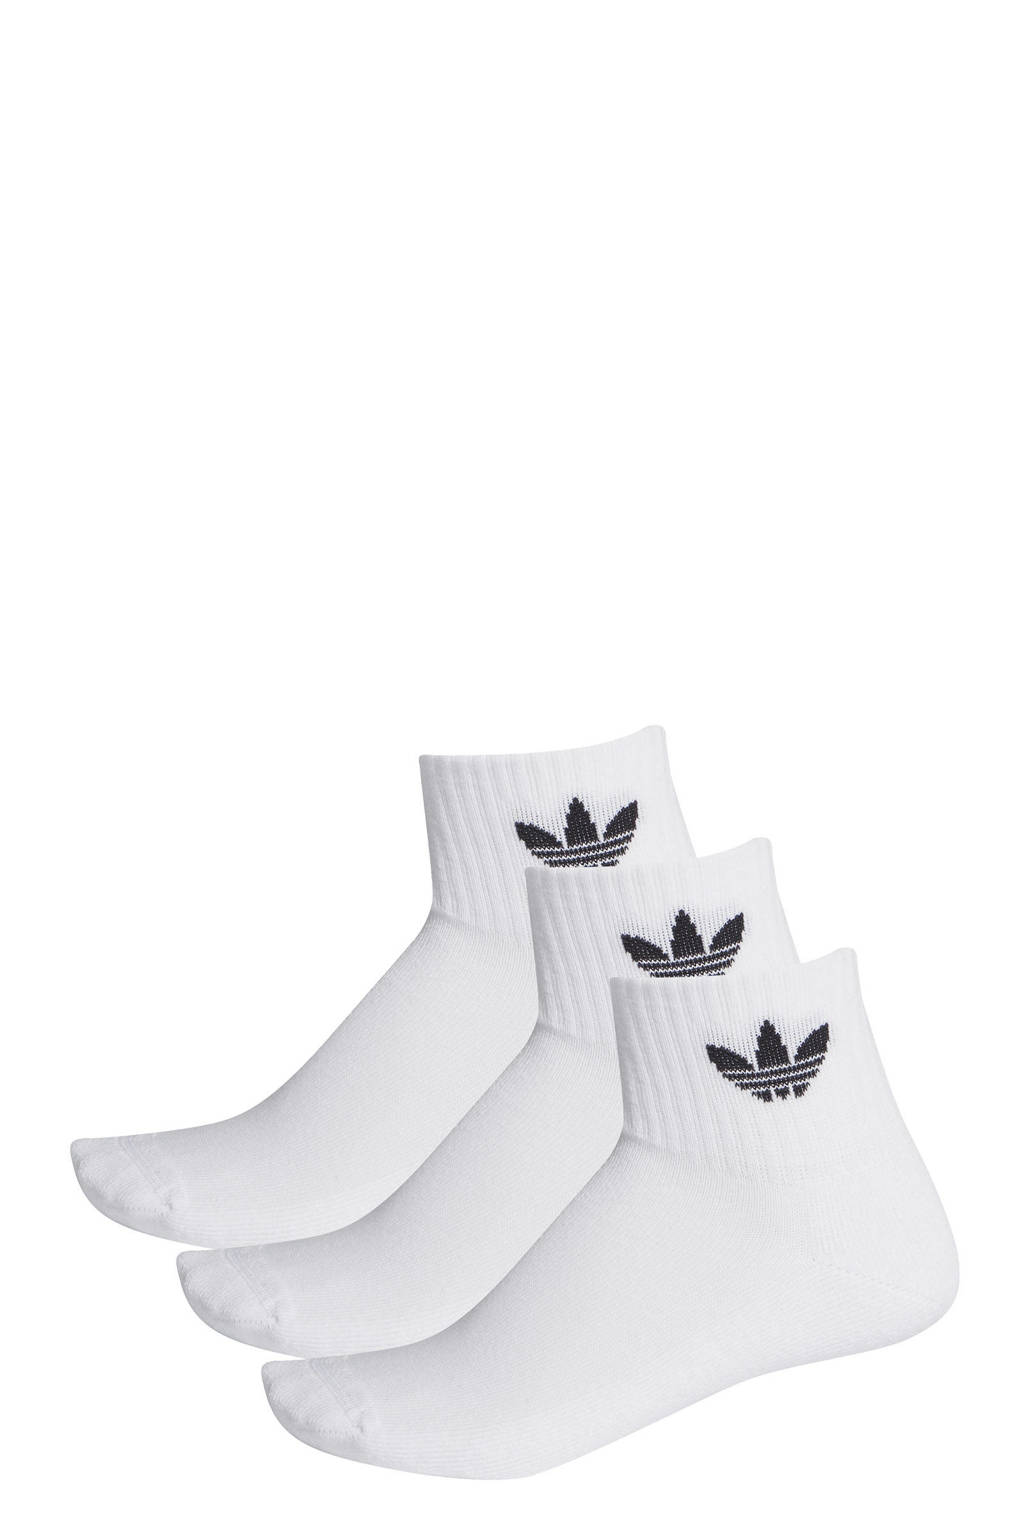 adidas Originals   sportsokken wit (set van 3), Wit